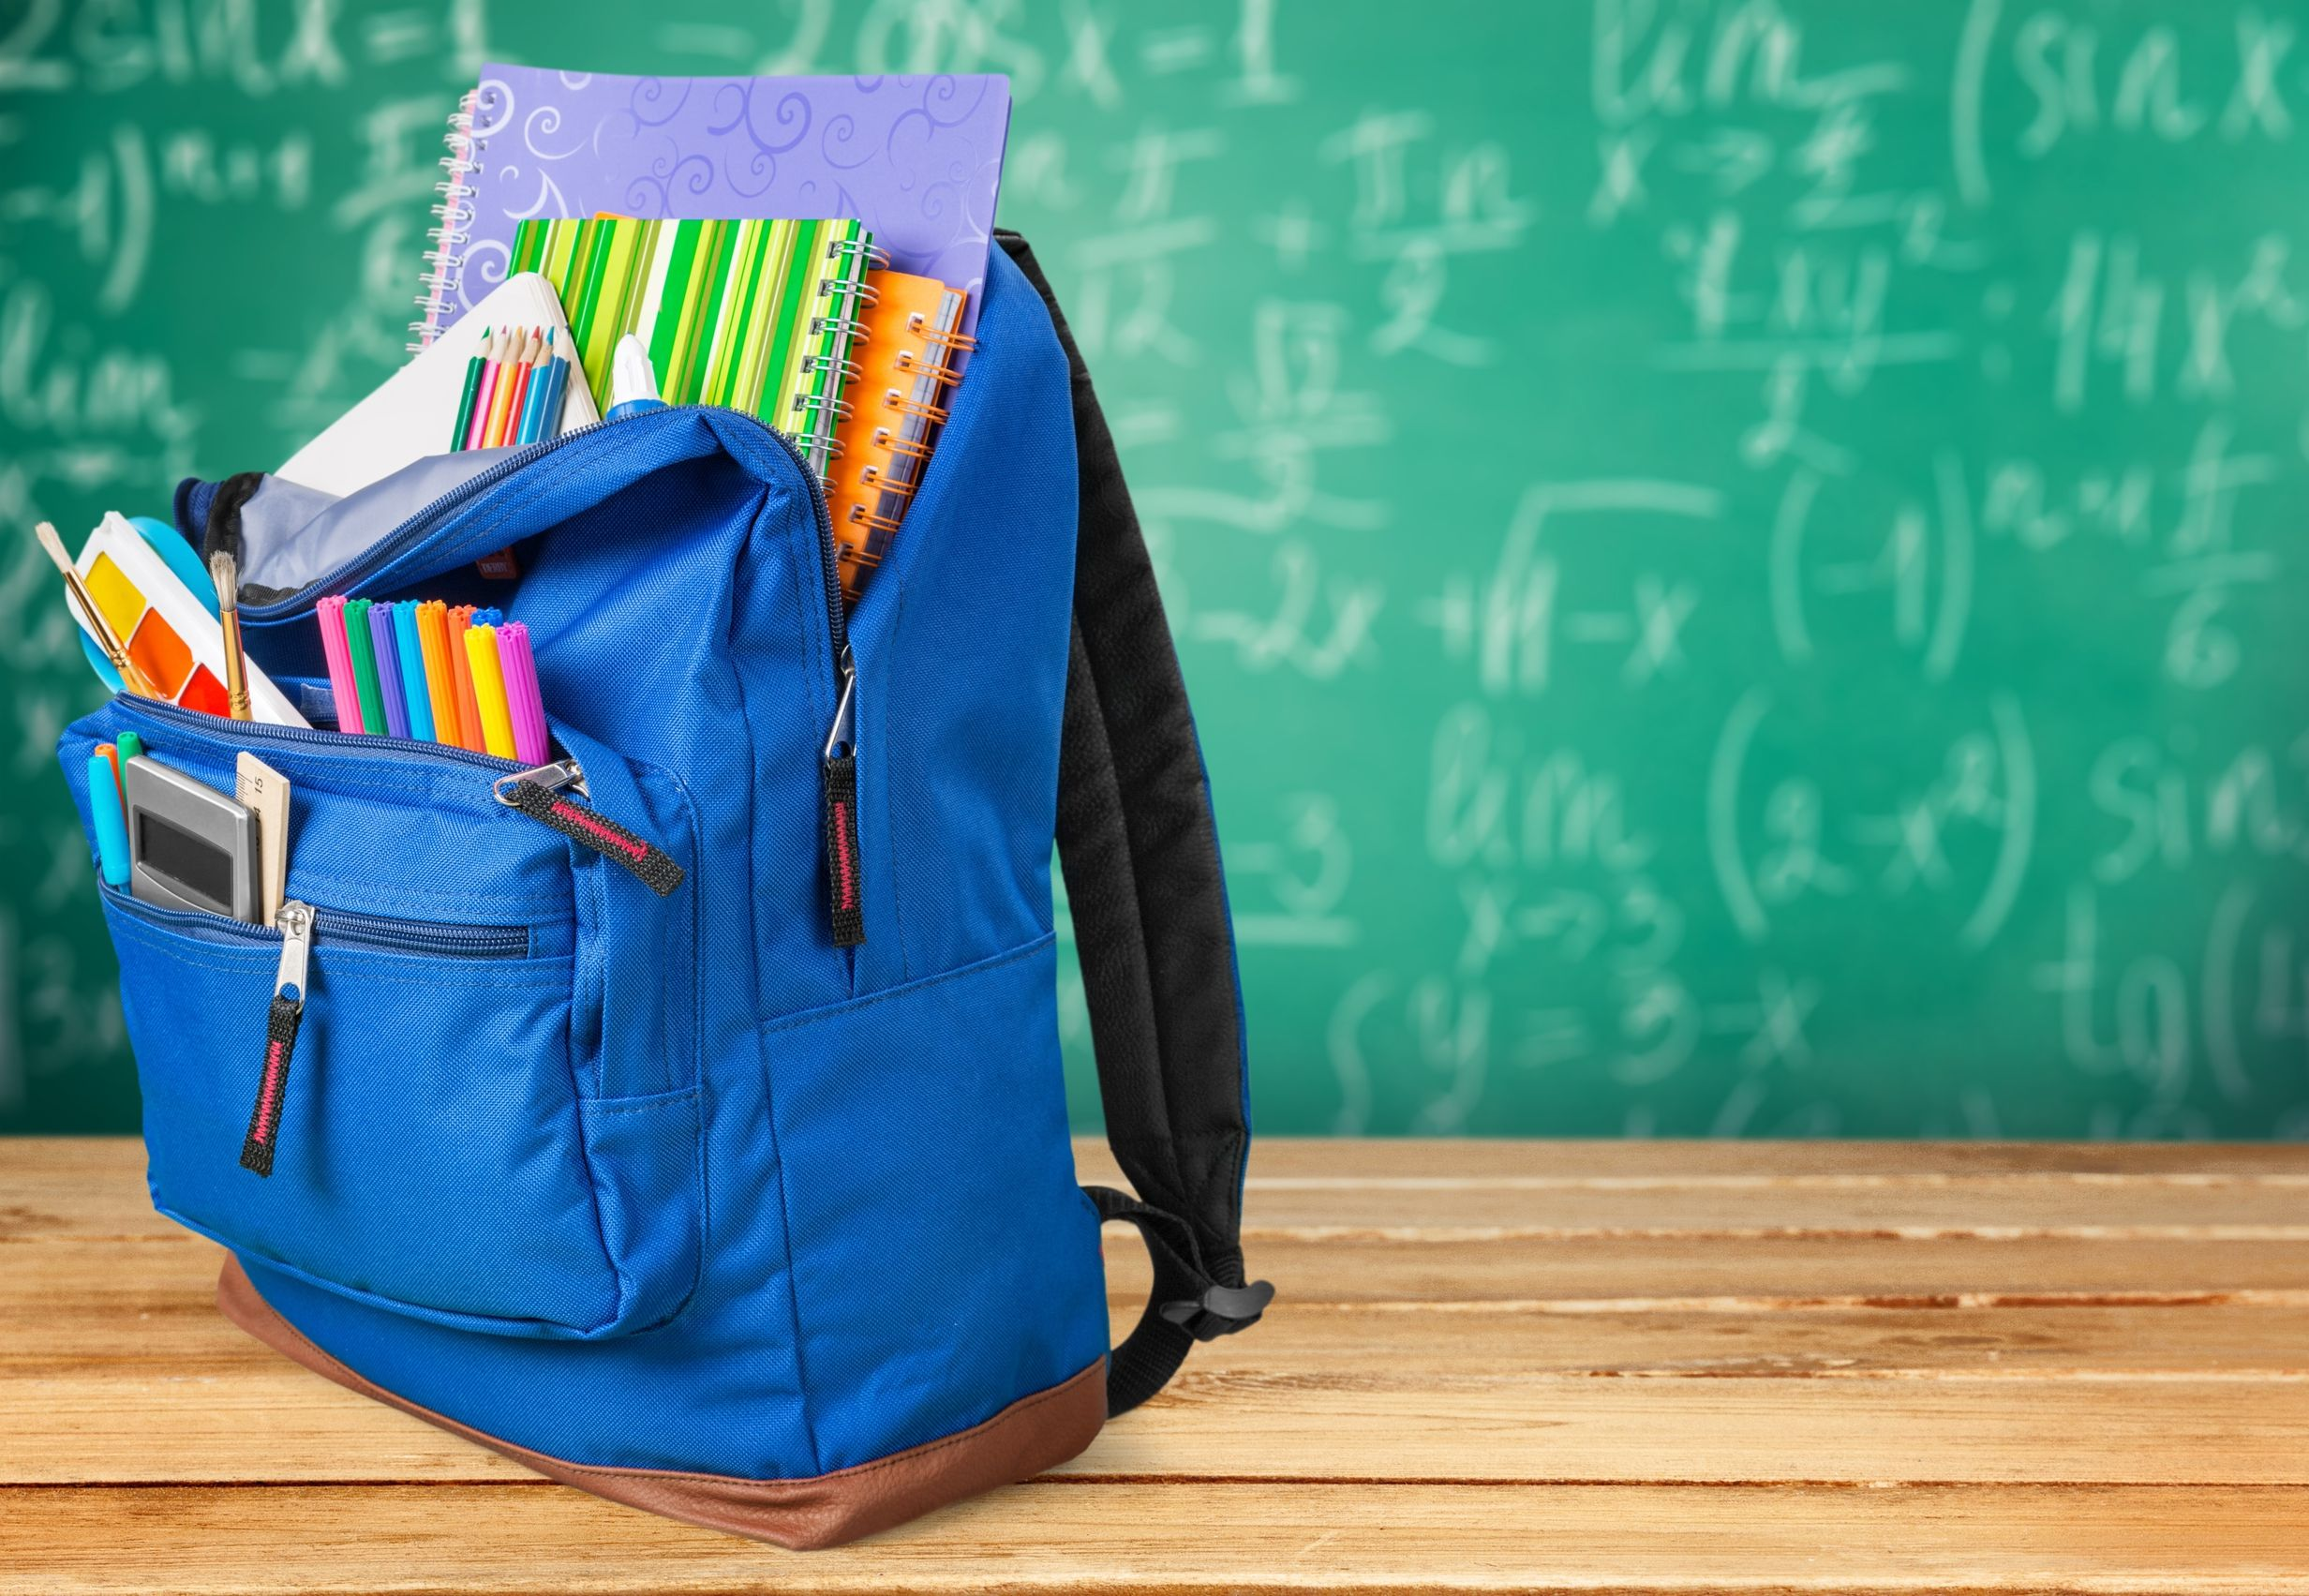 Watch Out for School Supplies with Harmful Toxins